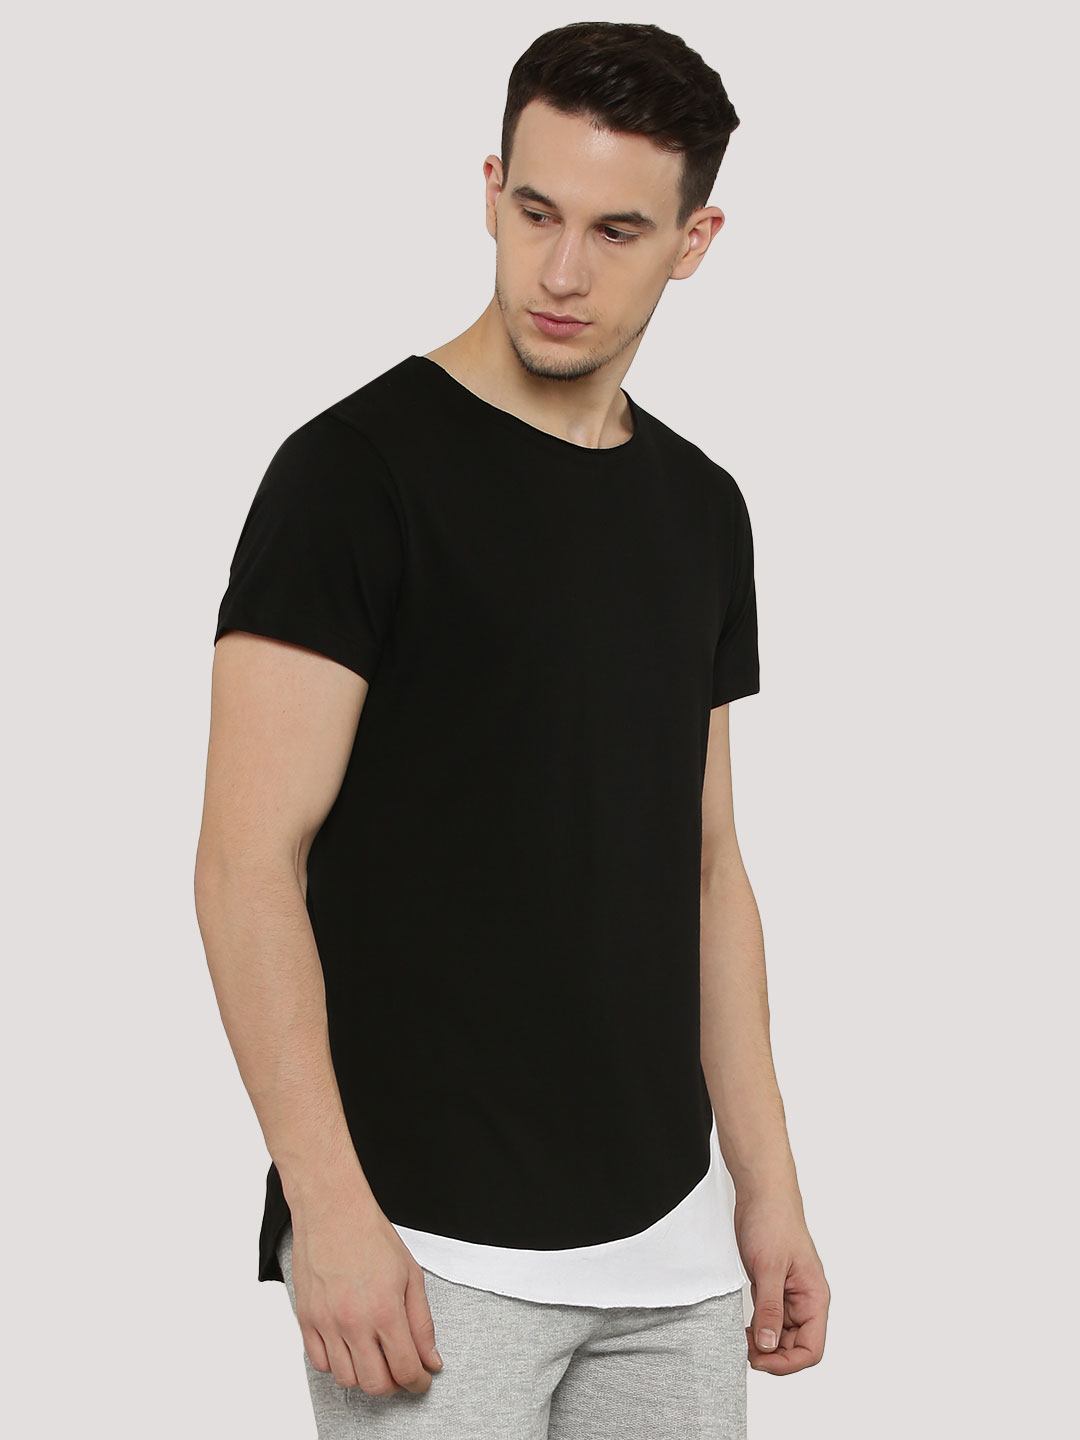 Mr Button T-Shirt With Asymmet...